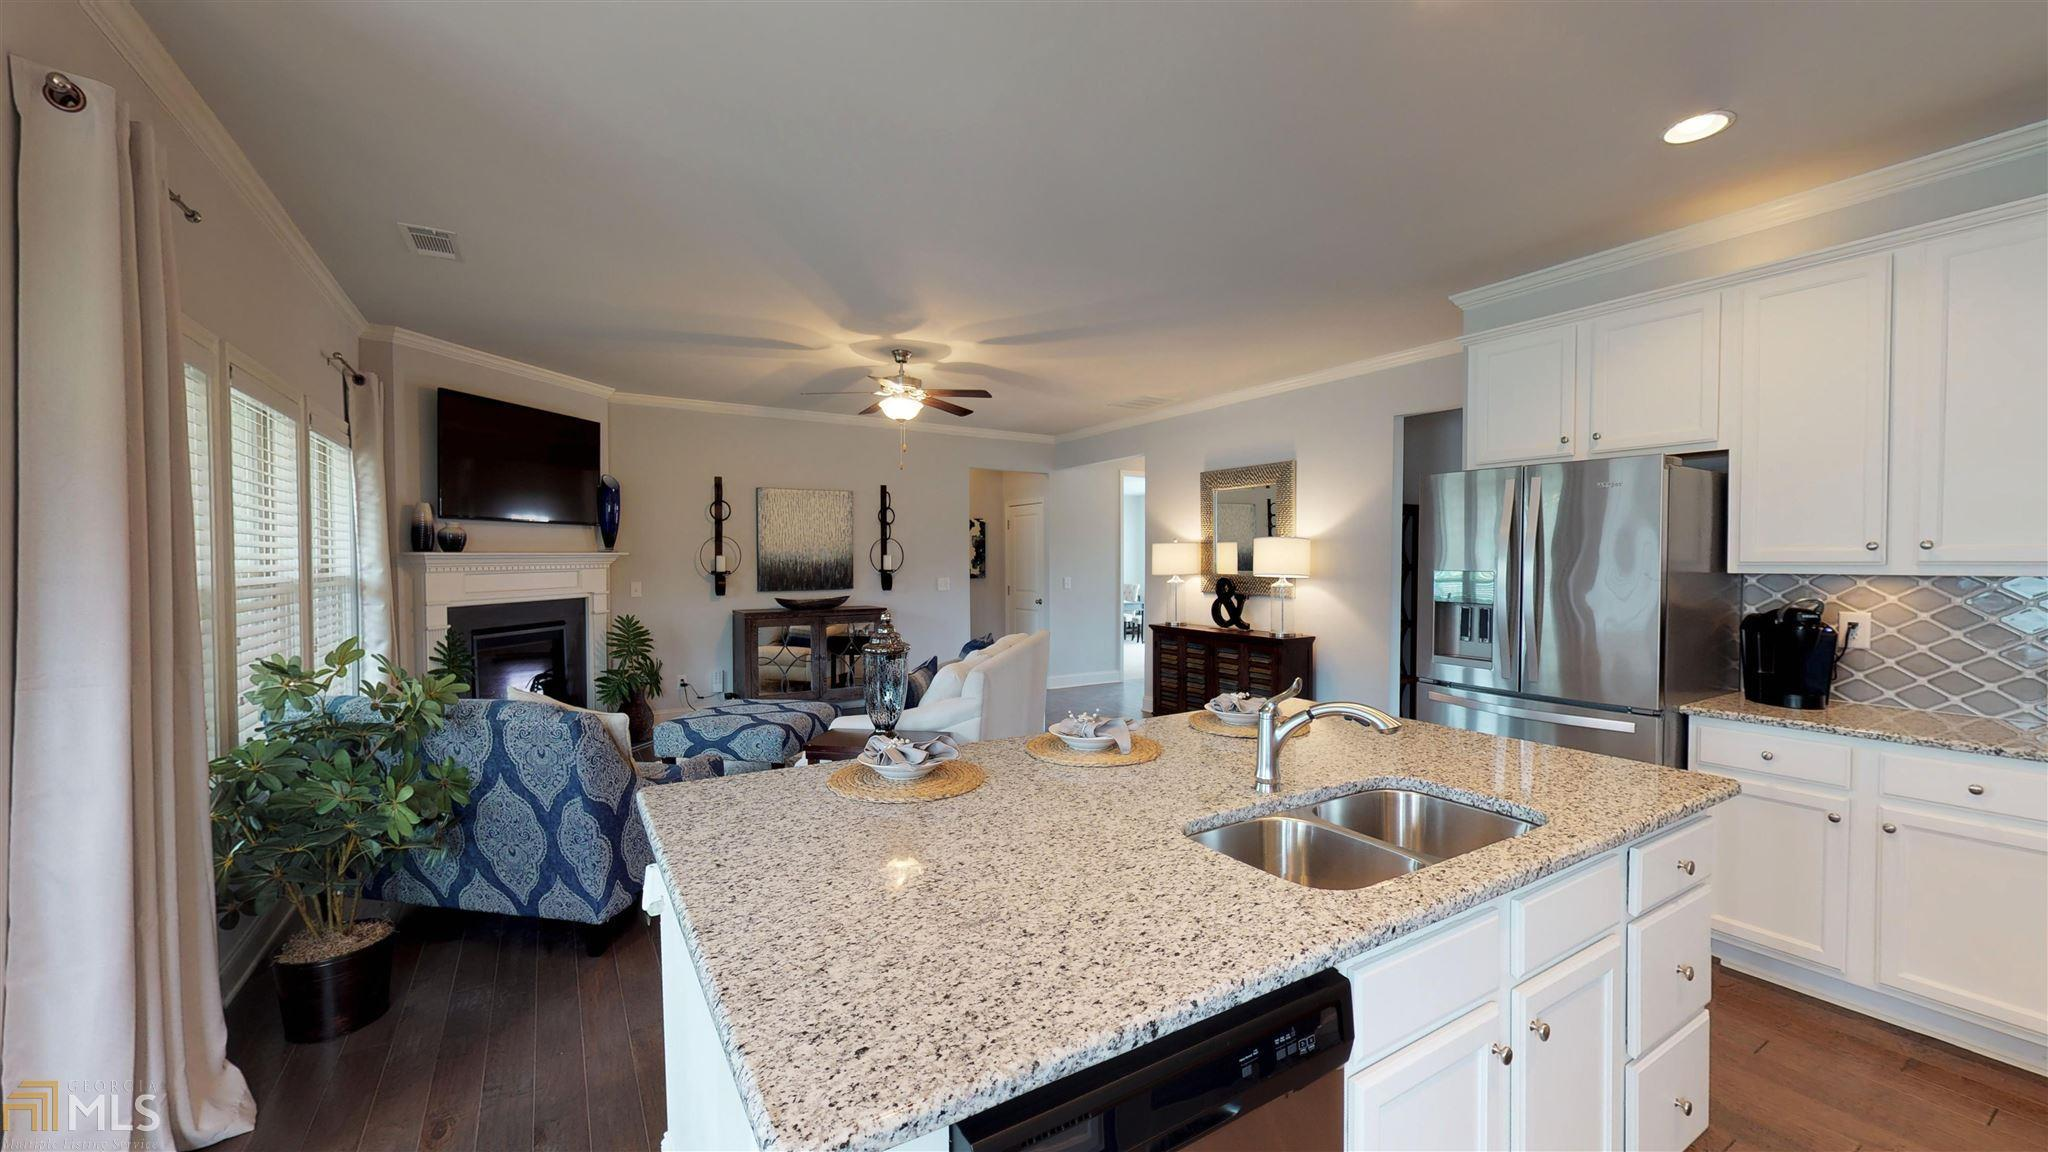 Kitchen featured in the Brentwood By Chafin Communities in Atlanta, GA